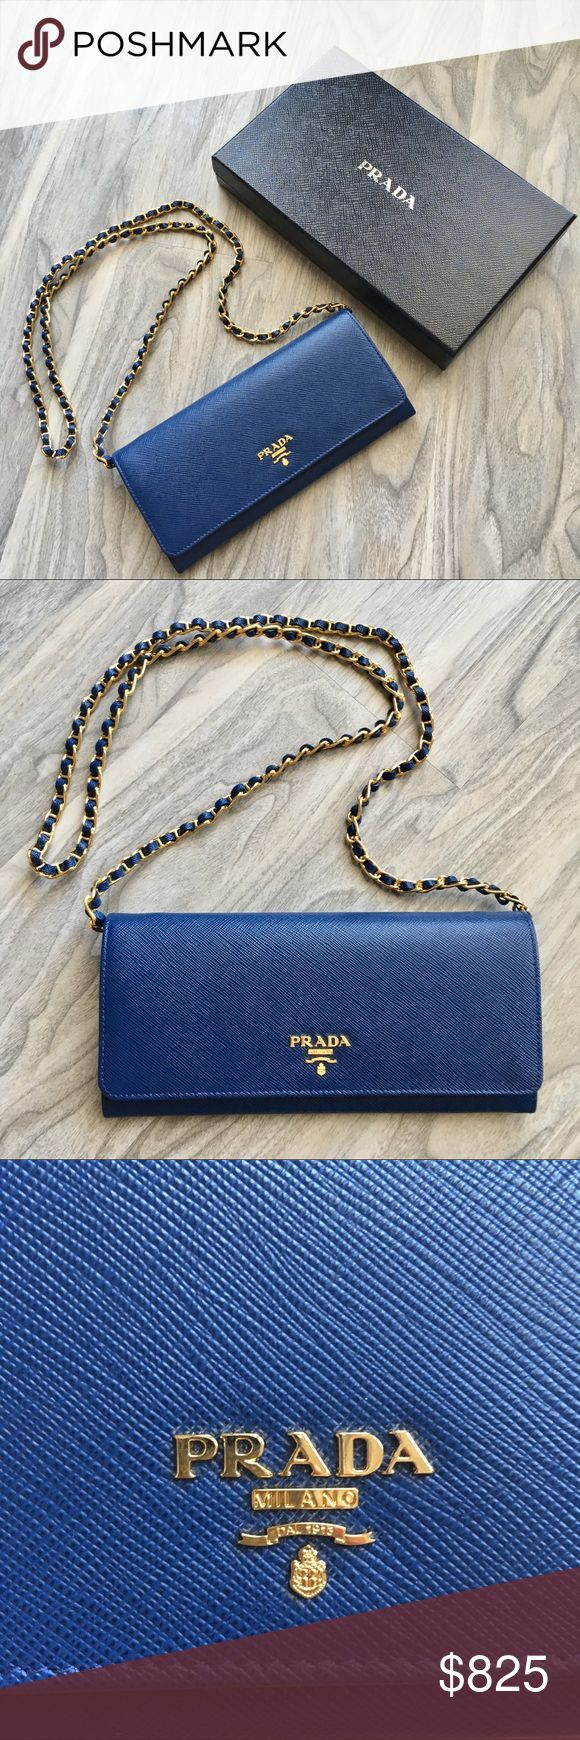 Prada Blue WOC NWT PRICE IS FIRM. Not taking any offers due to fee. ❌trade. All items over $500 will be authenticated by the Poshmark team. Prada Saffiano Metal Oro Chain Wallet in blue. It is a beautiful bag. You can even remove the chain and turn it into a wallet. The box is new and it has been barely opened. Currently $875 in stores + tax Prada Bags Crossbody Bags